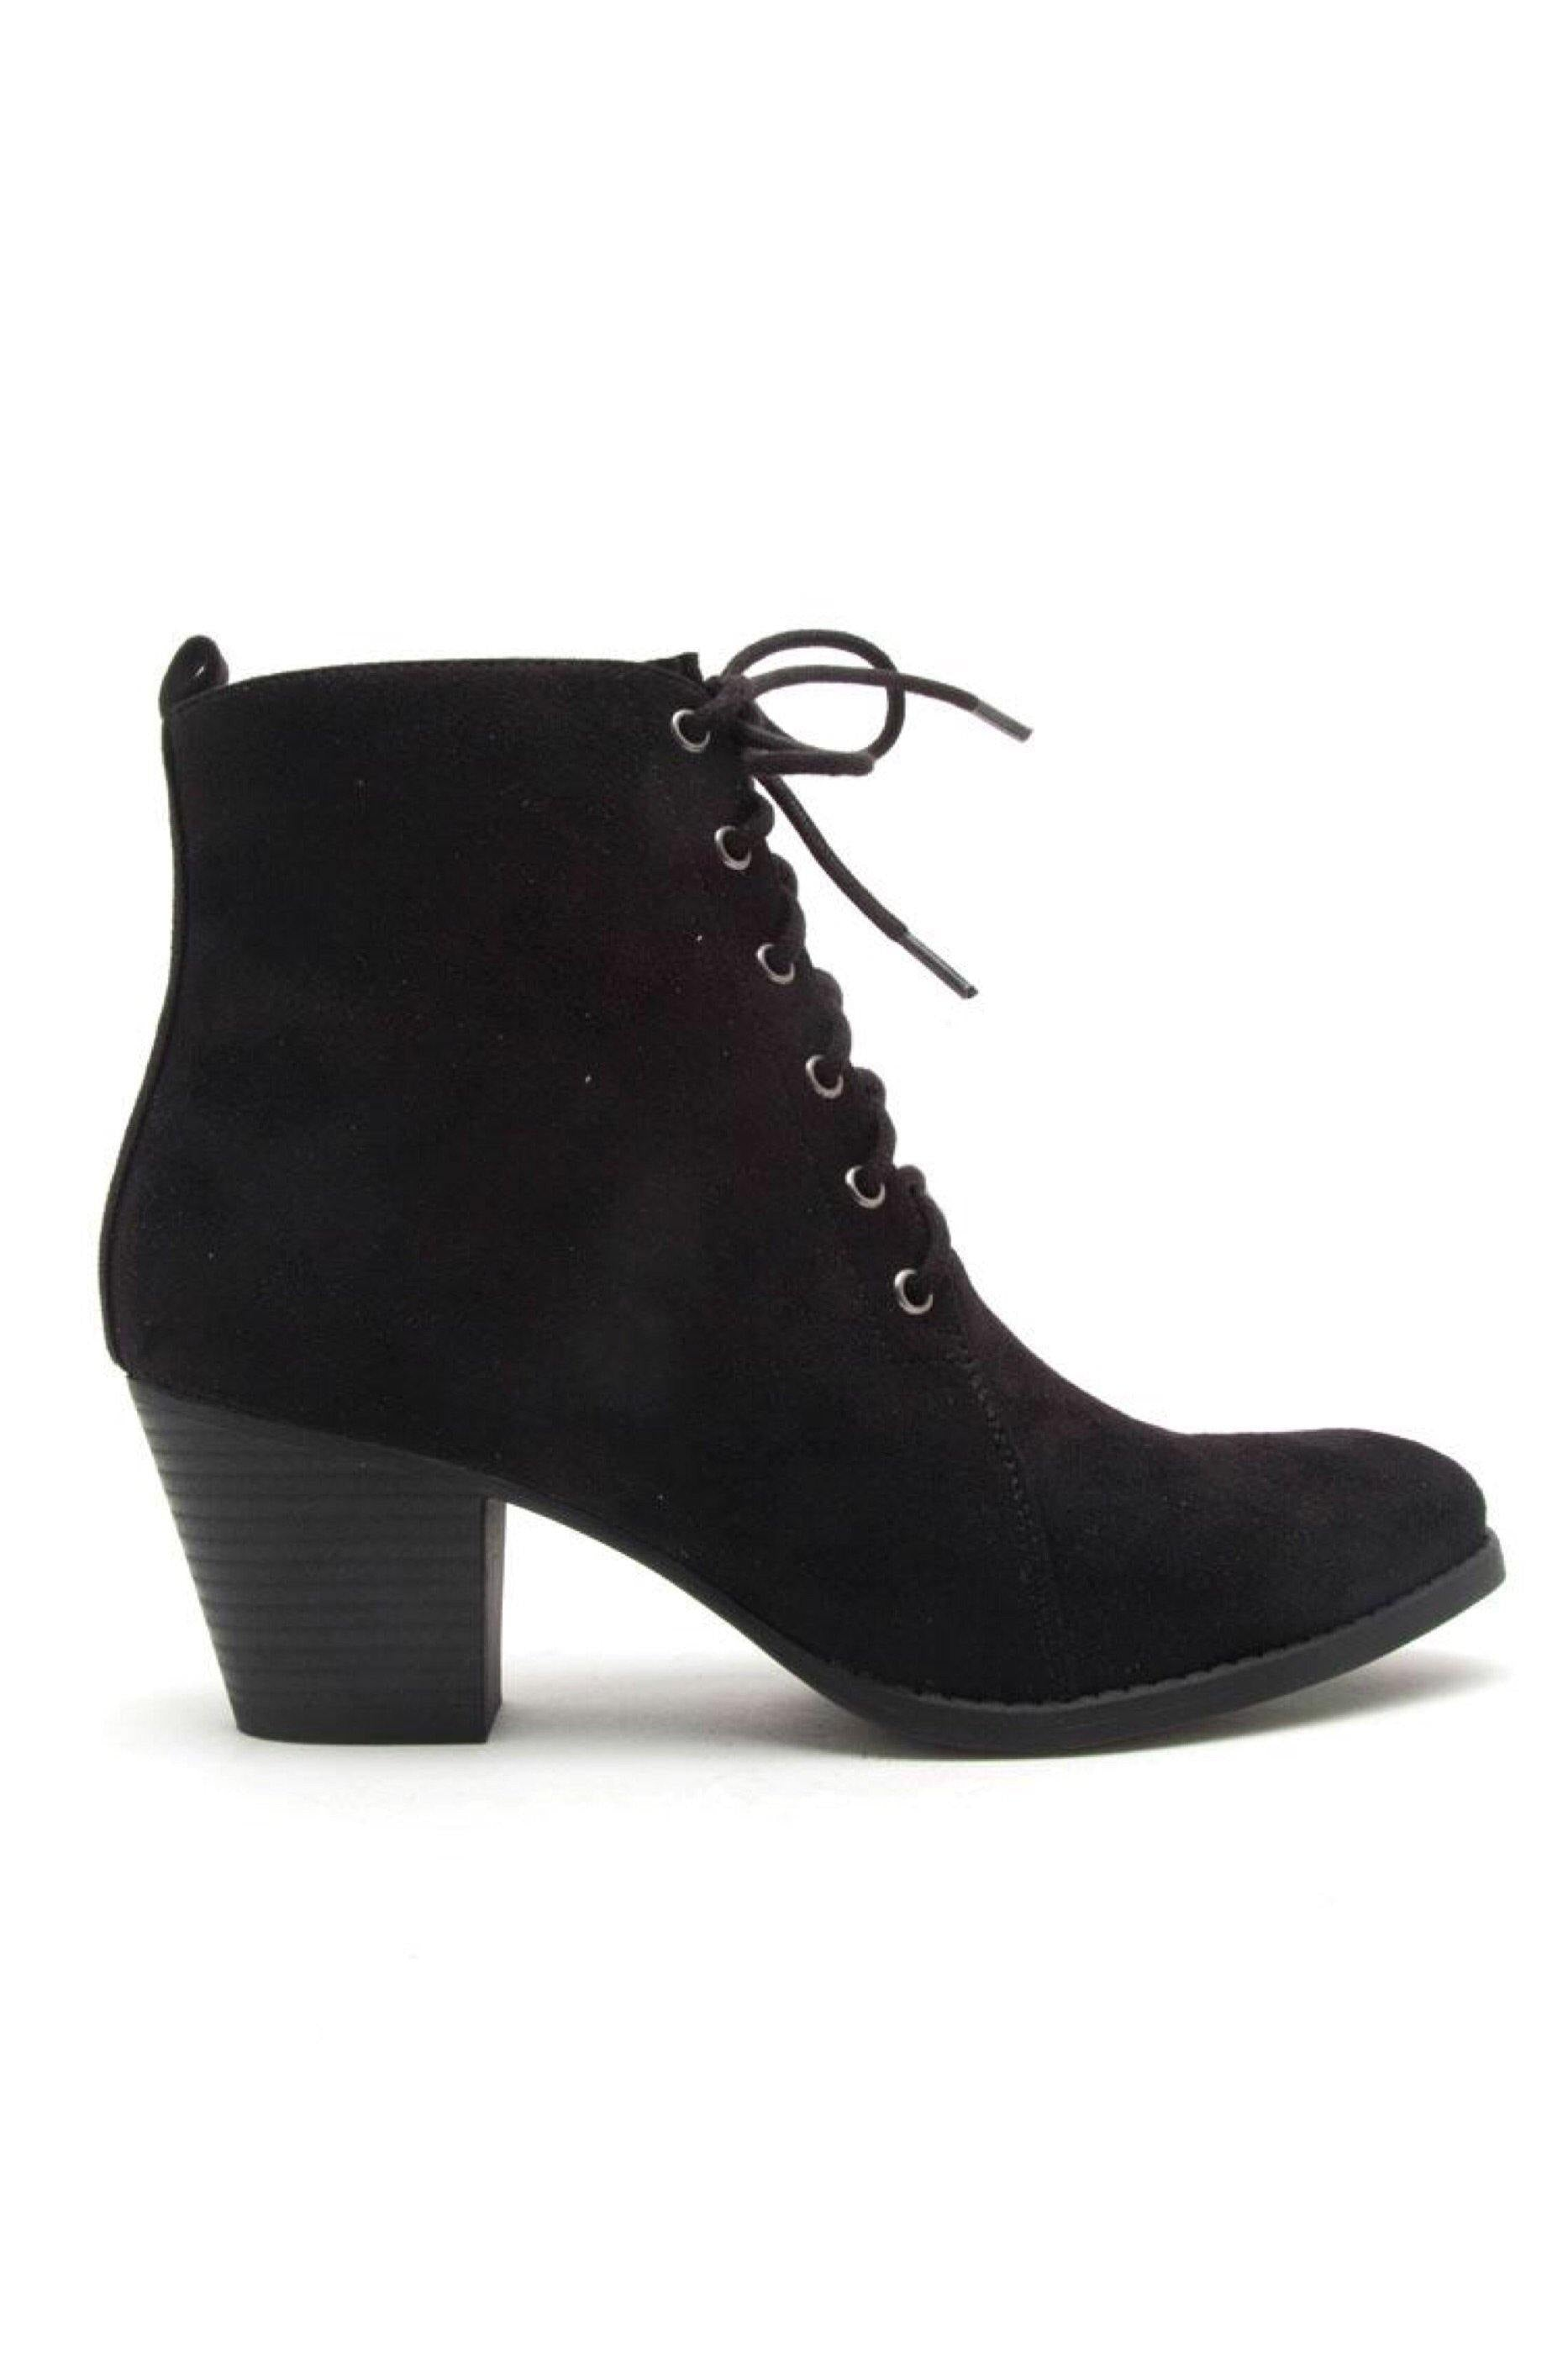 Morrision Black high heel Boots